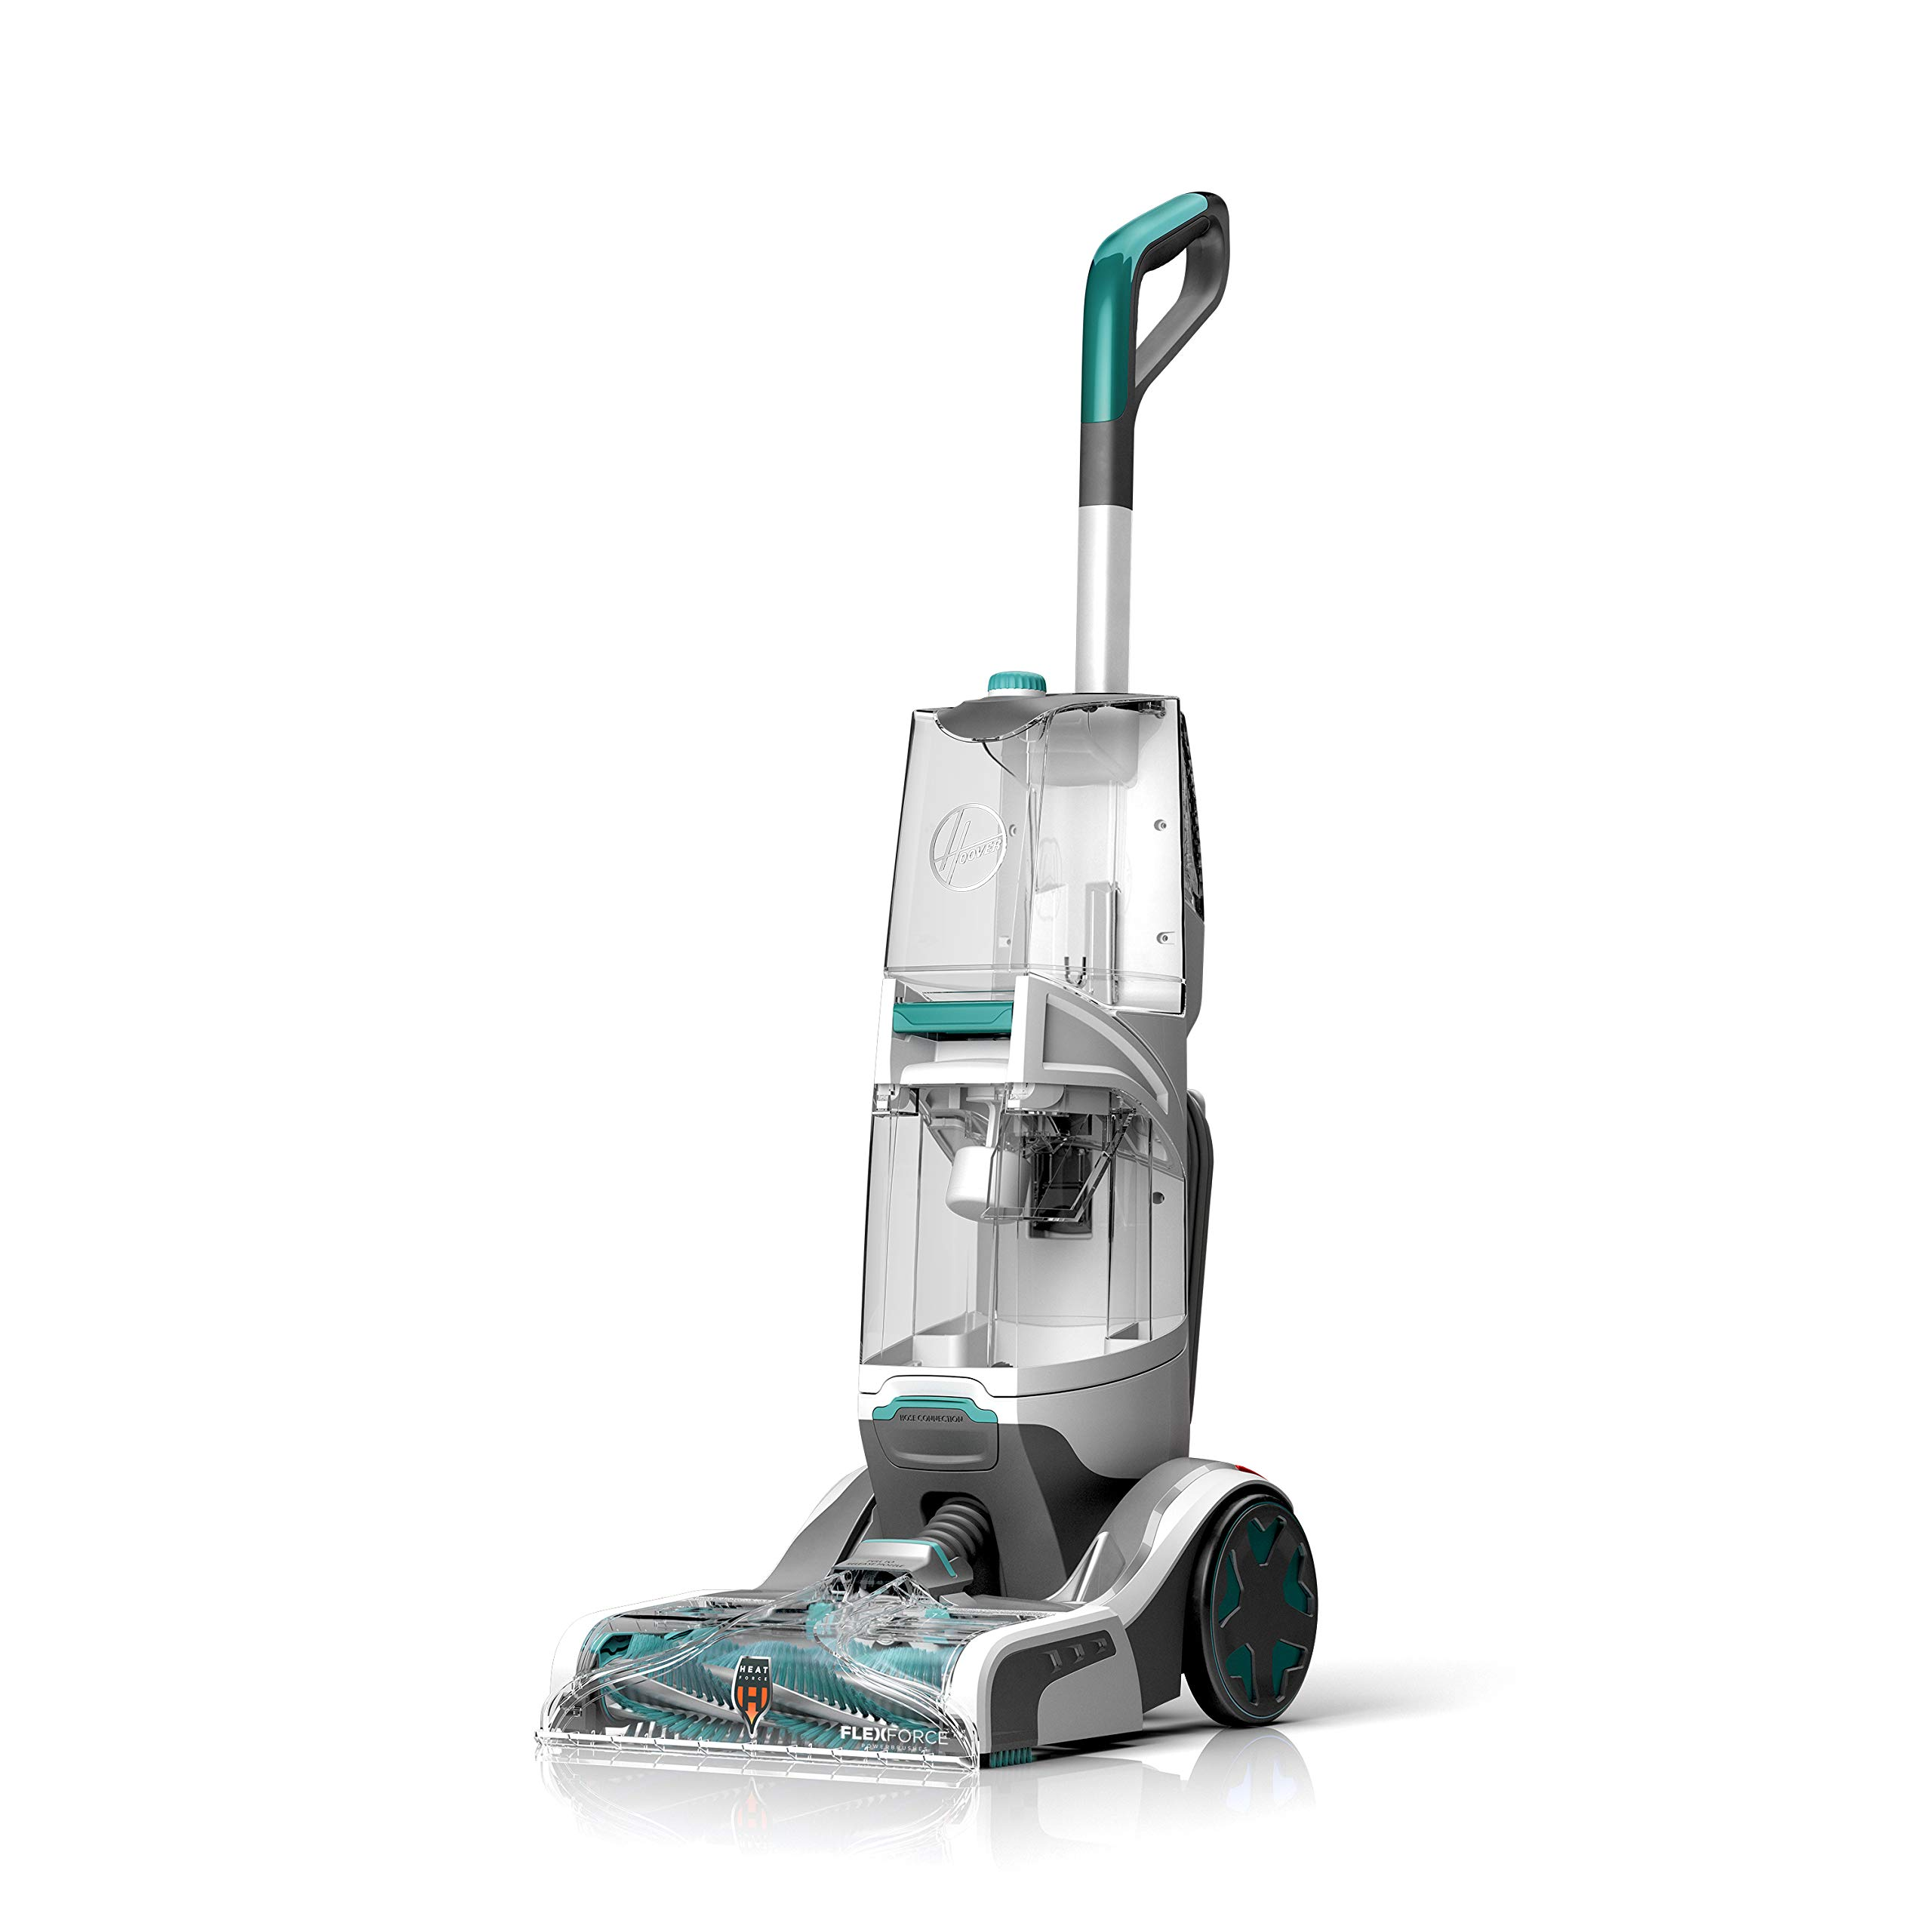 Hoover Smartwash Automatic Carpet Cleaner, FH52000, Turquoise product image